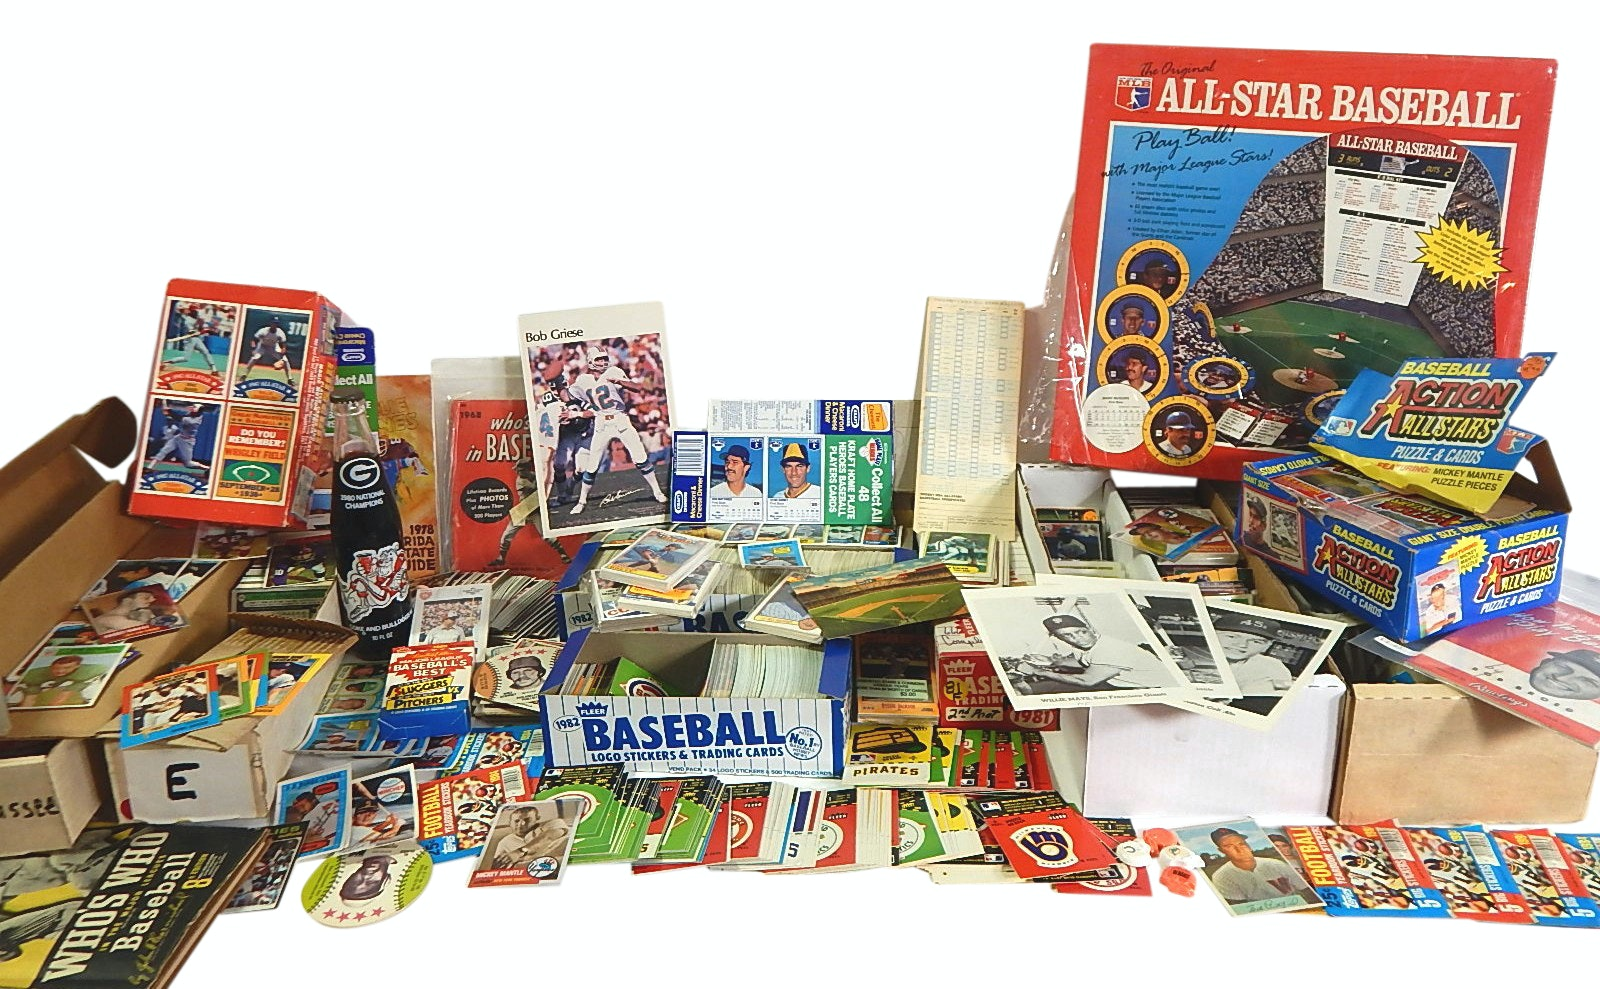 Large Sports Card and Memorabilia Collection with Baseball and Football